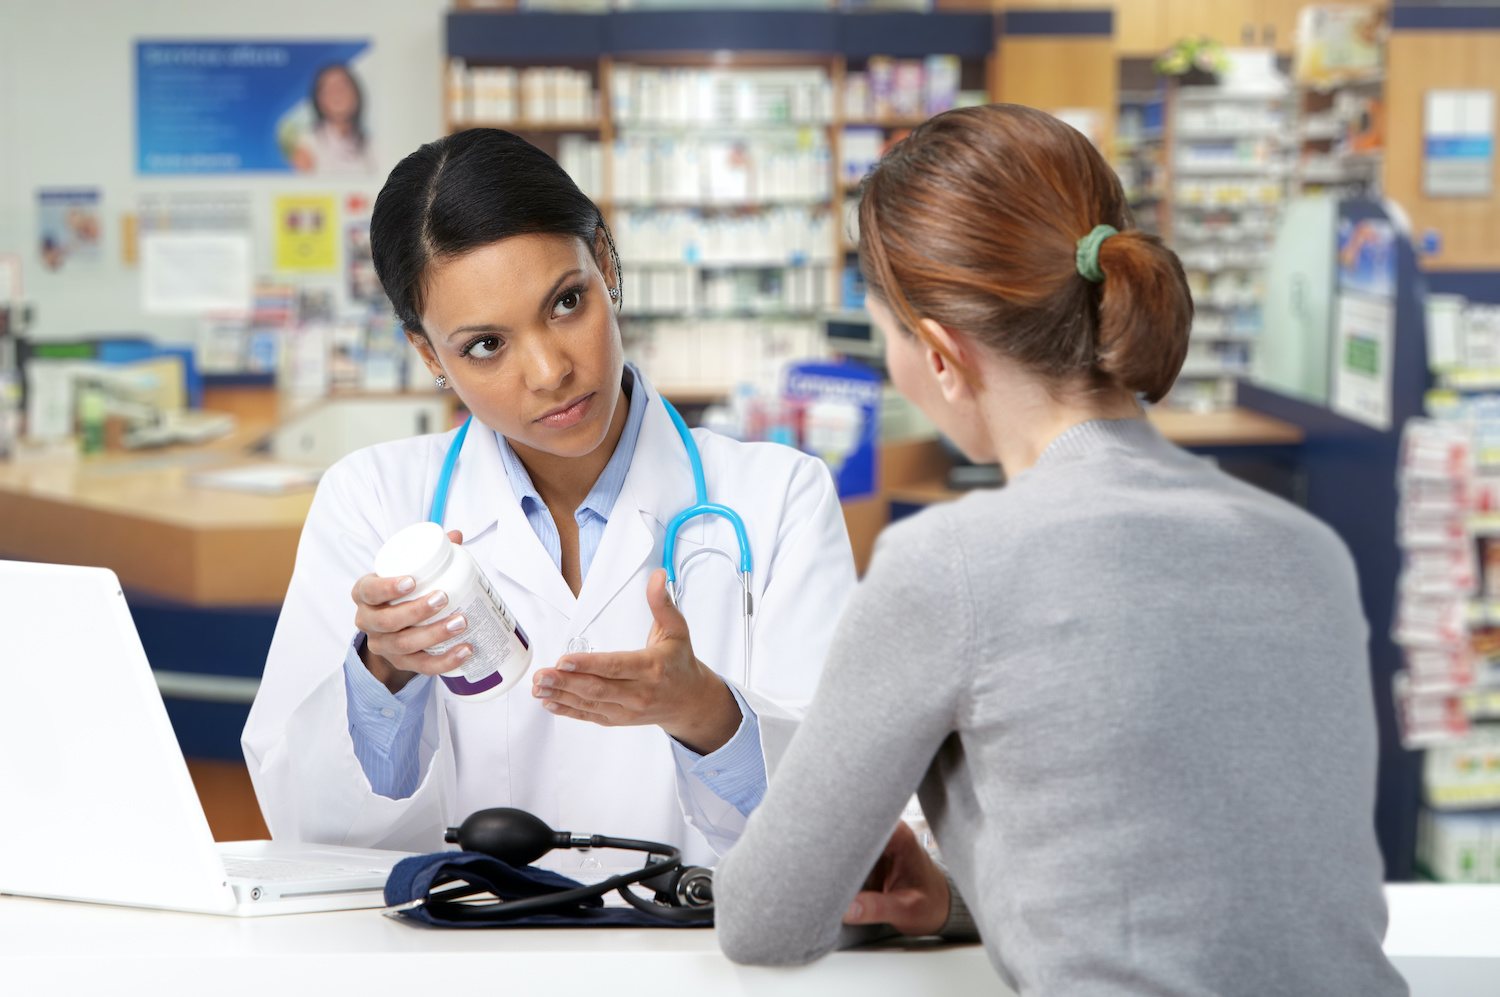 Having trouble keeping your medications straight? Stop by any of our stores to sit down with one of our pharmacists and let them answers any questions you may have about your medications!